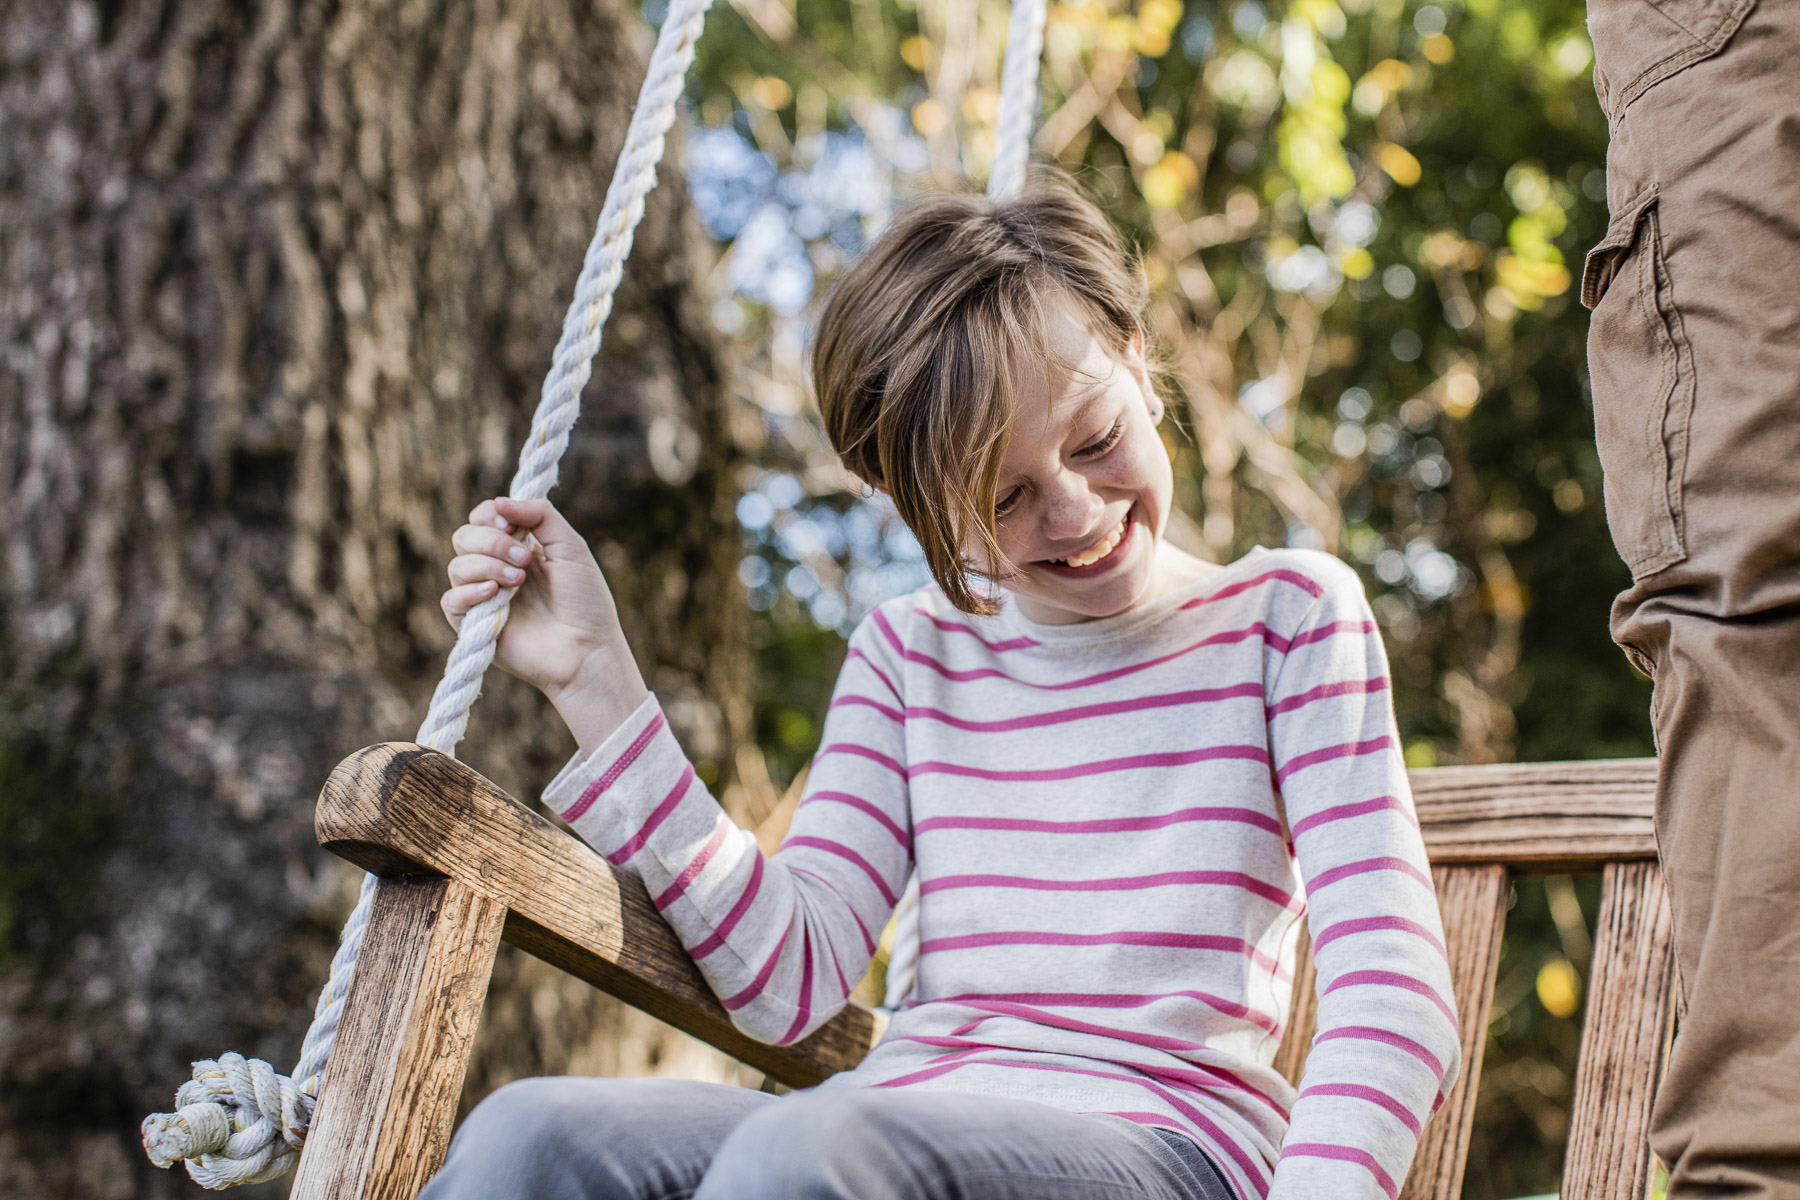 Young Girl on a Bench Swing in a Backyard